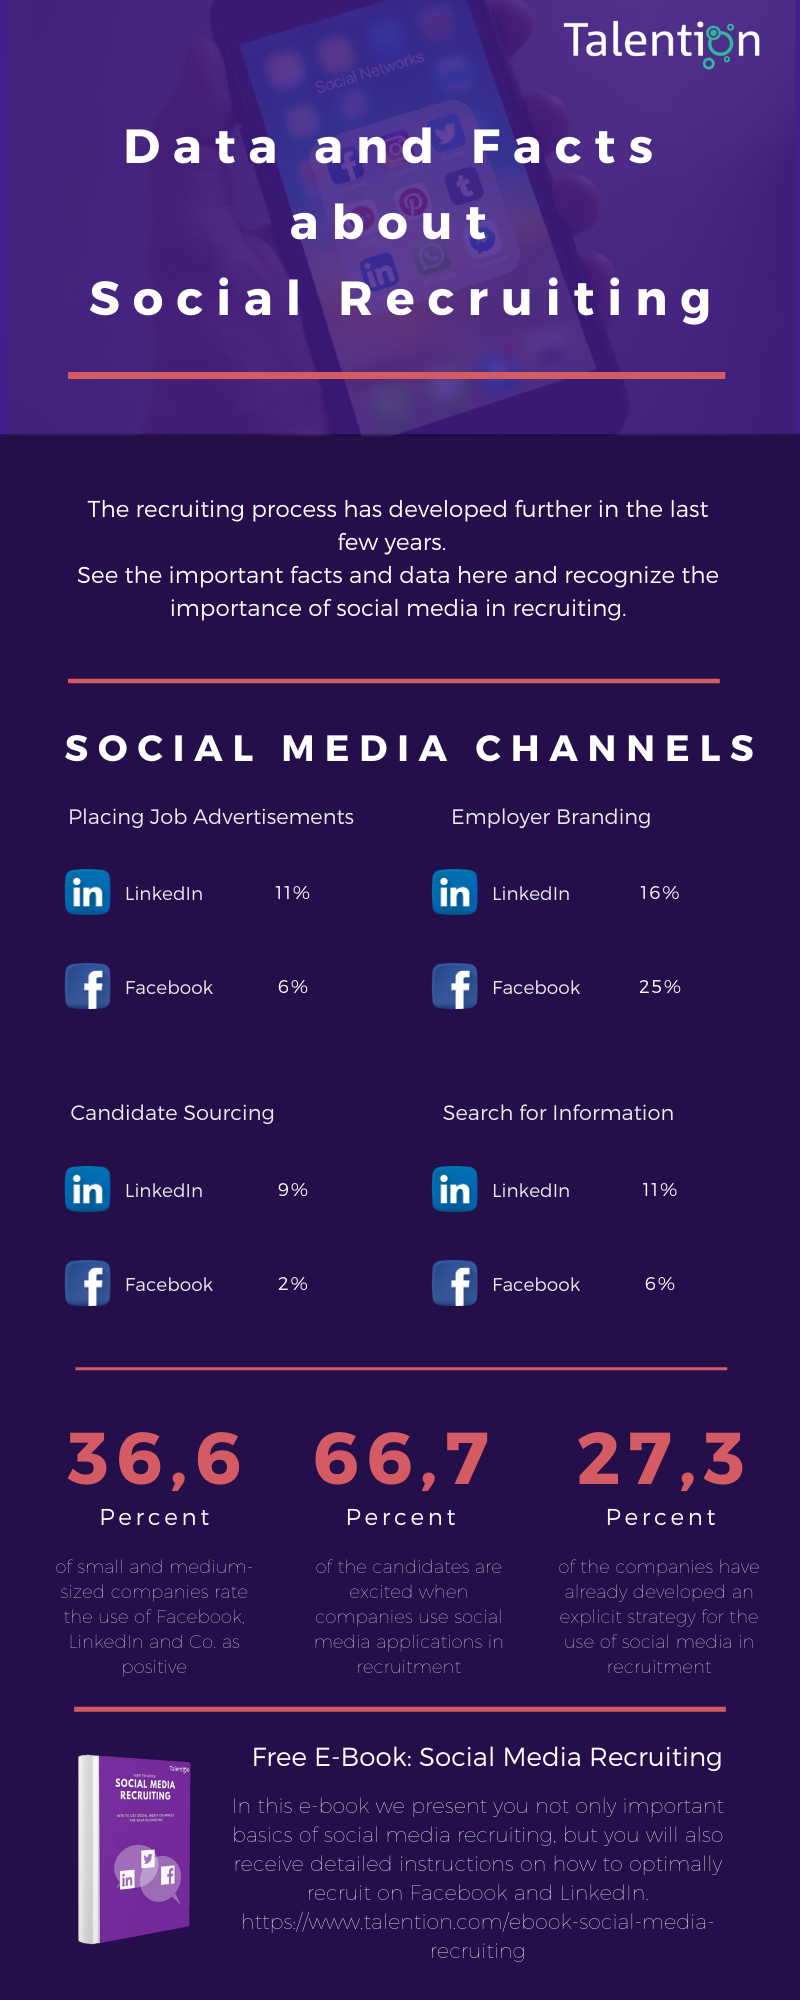 Data and Facts about Social Recruiting